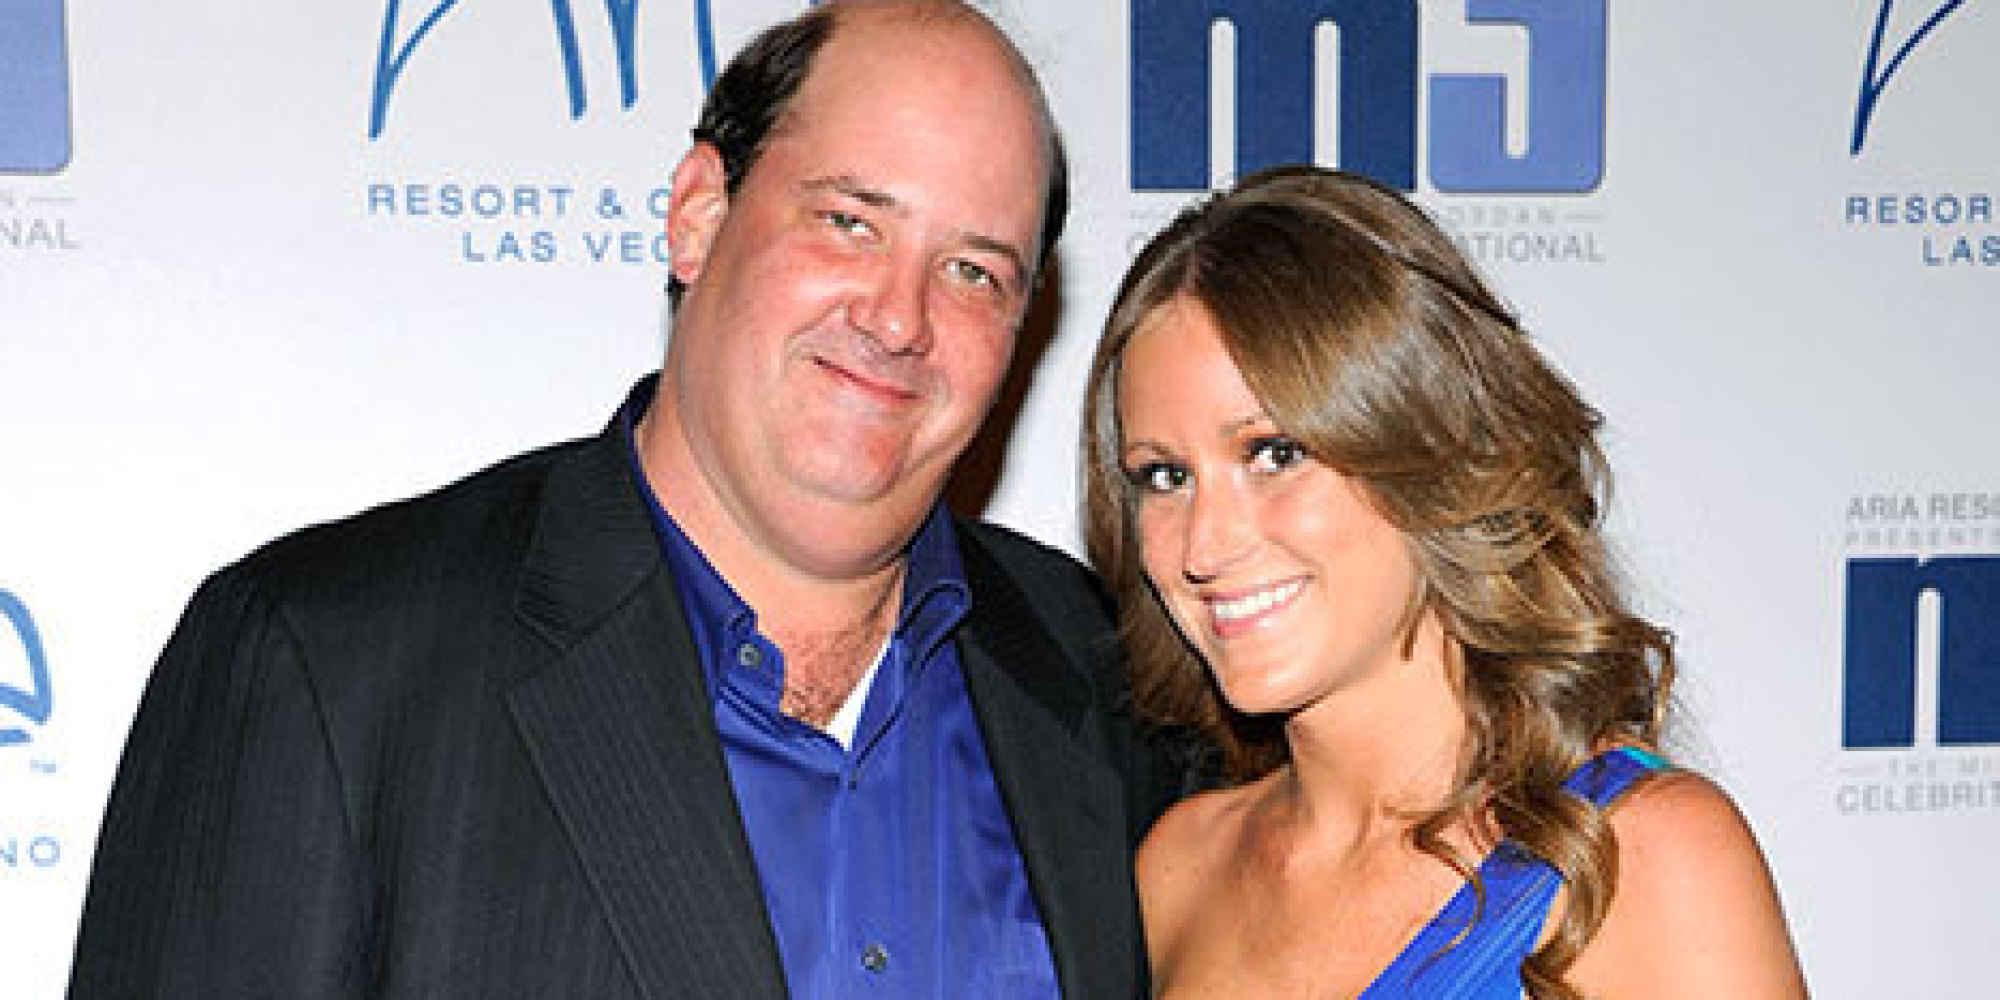 Brian Baumgartner Wallpapers